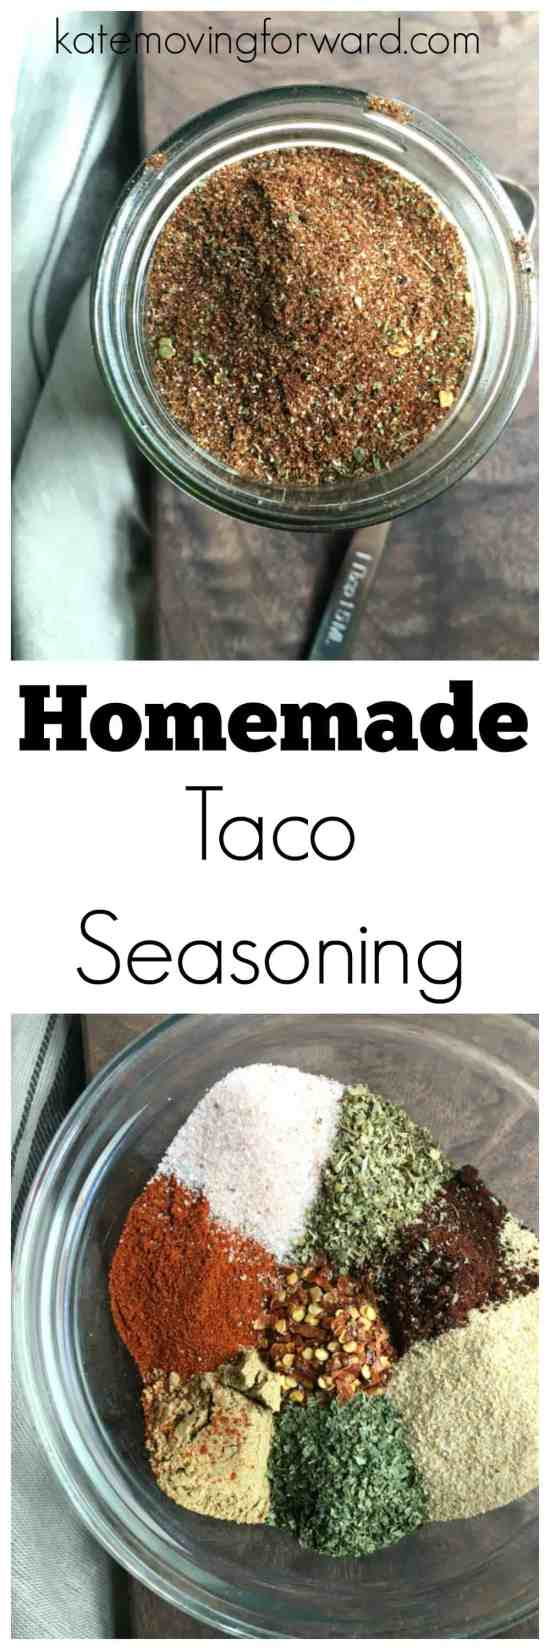 Homemade Taco Seasoning - Make your own DIY taco spice mix for tacos, enchiladas, taco salads, quesadillas and more! Super simple, filling, and tasty with no weird ingredients or excessive sodium!